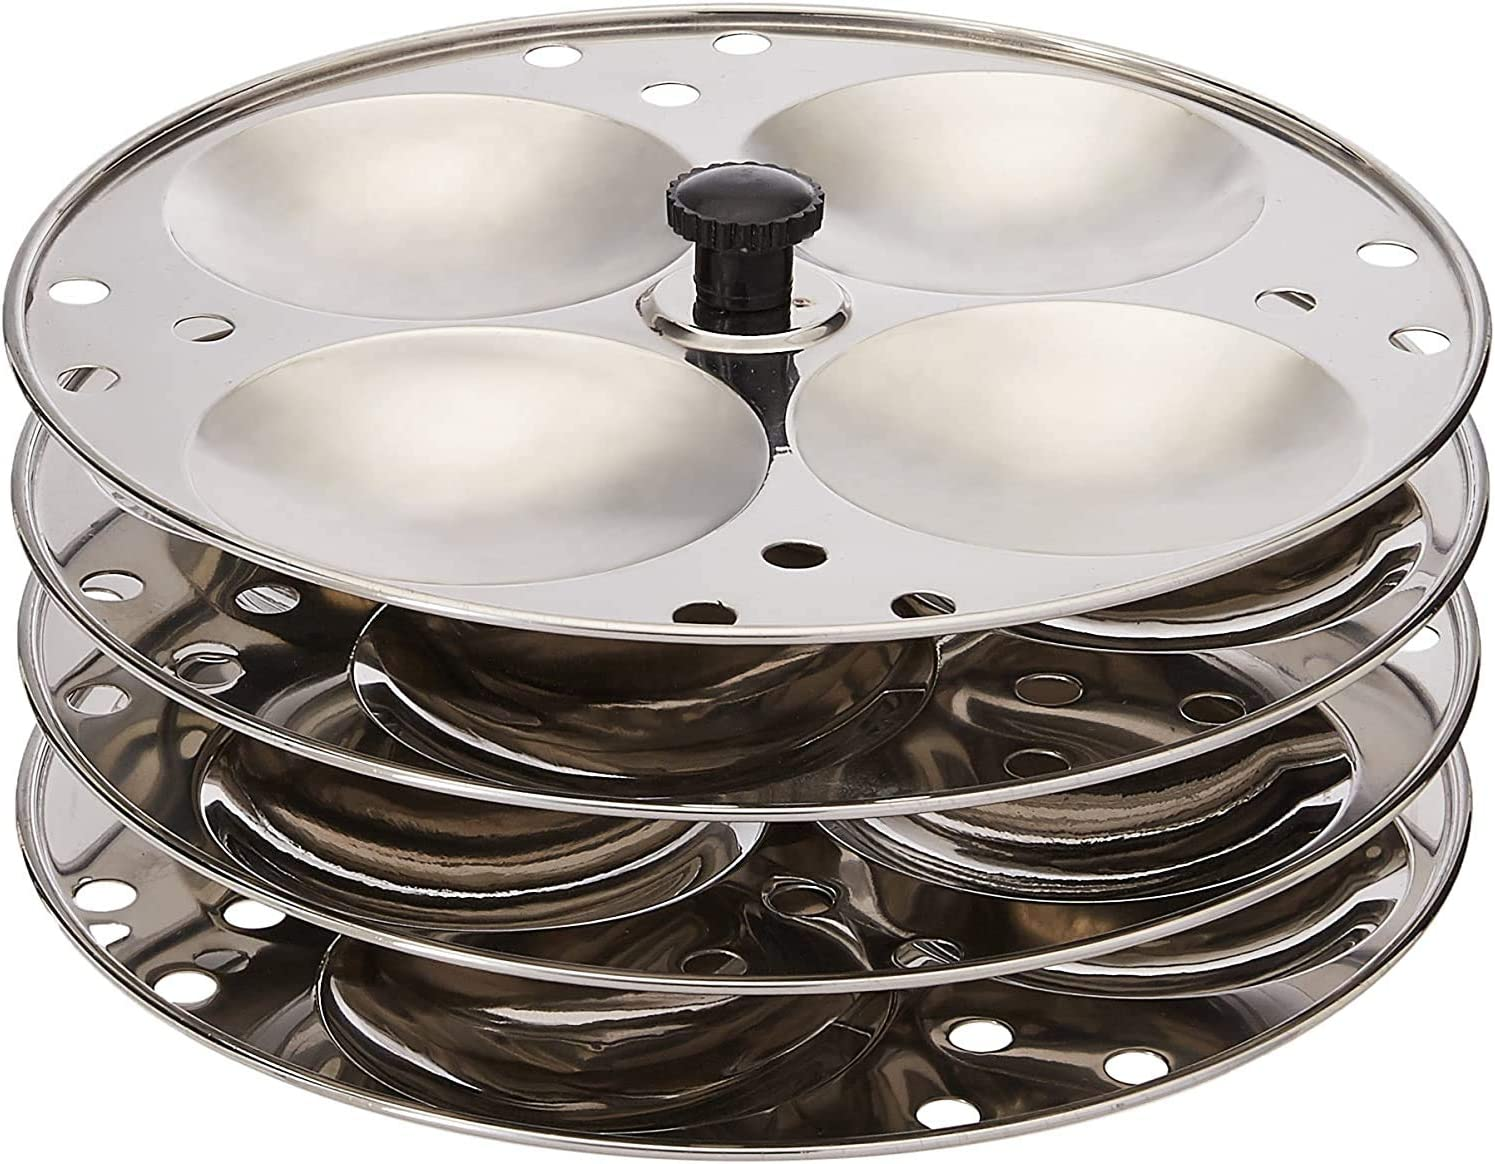 Stainless Steel Plates 4-Rack Idli Stand Makes 16 Idlis idli Stand for Pressure Cooker, Stainless Steel Idli Maker Kitchen Appliances,